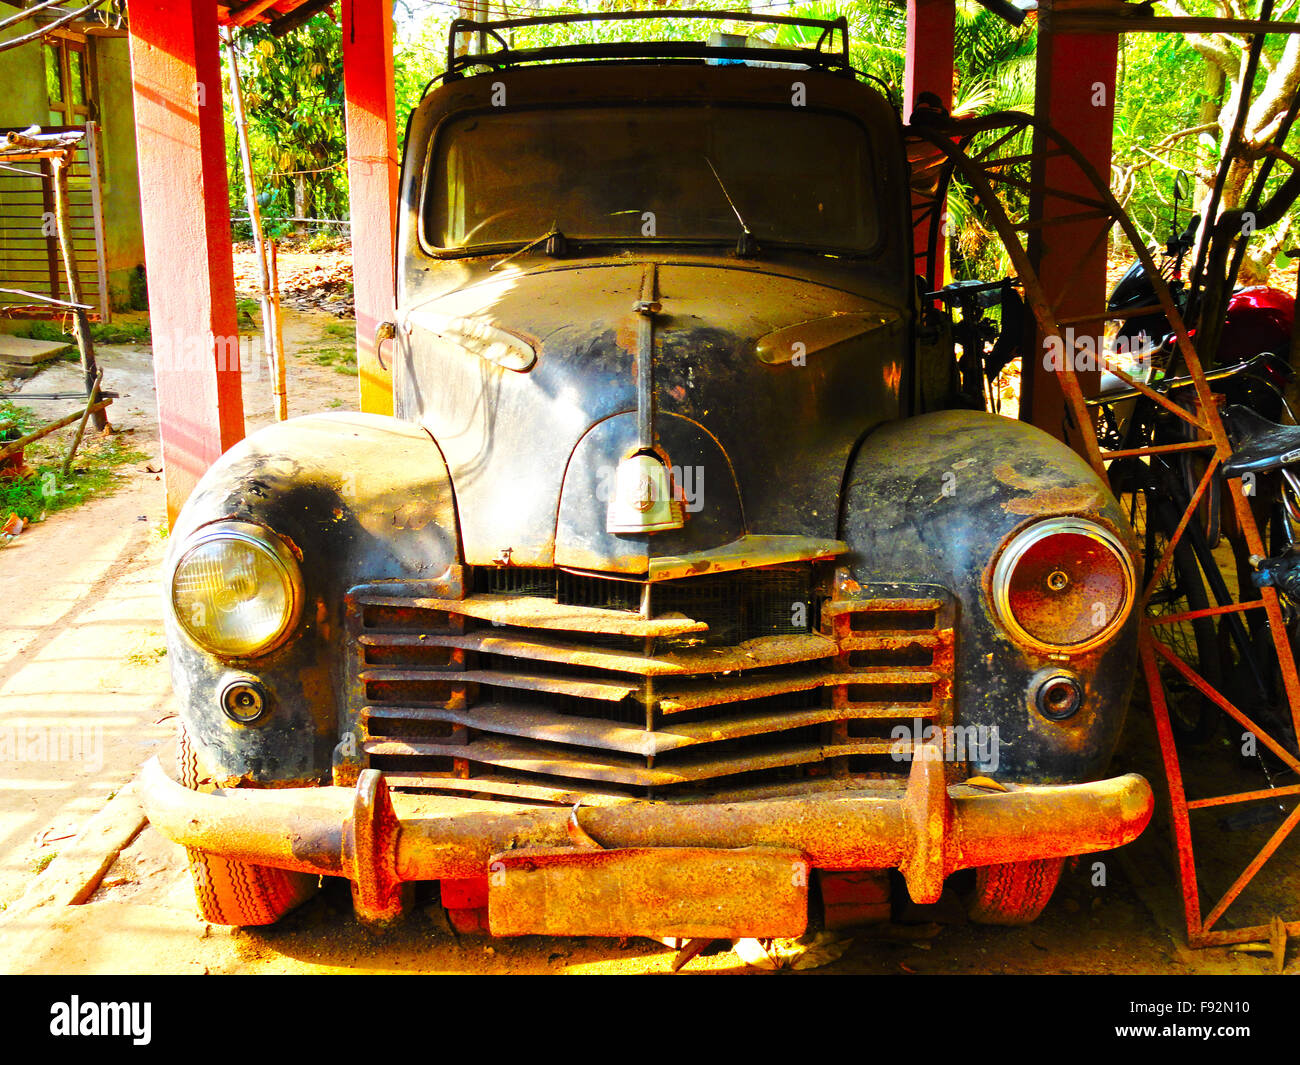 Old forgotten car at the backyard - Stock Image